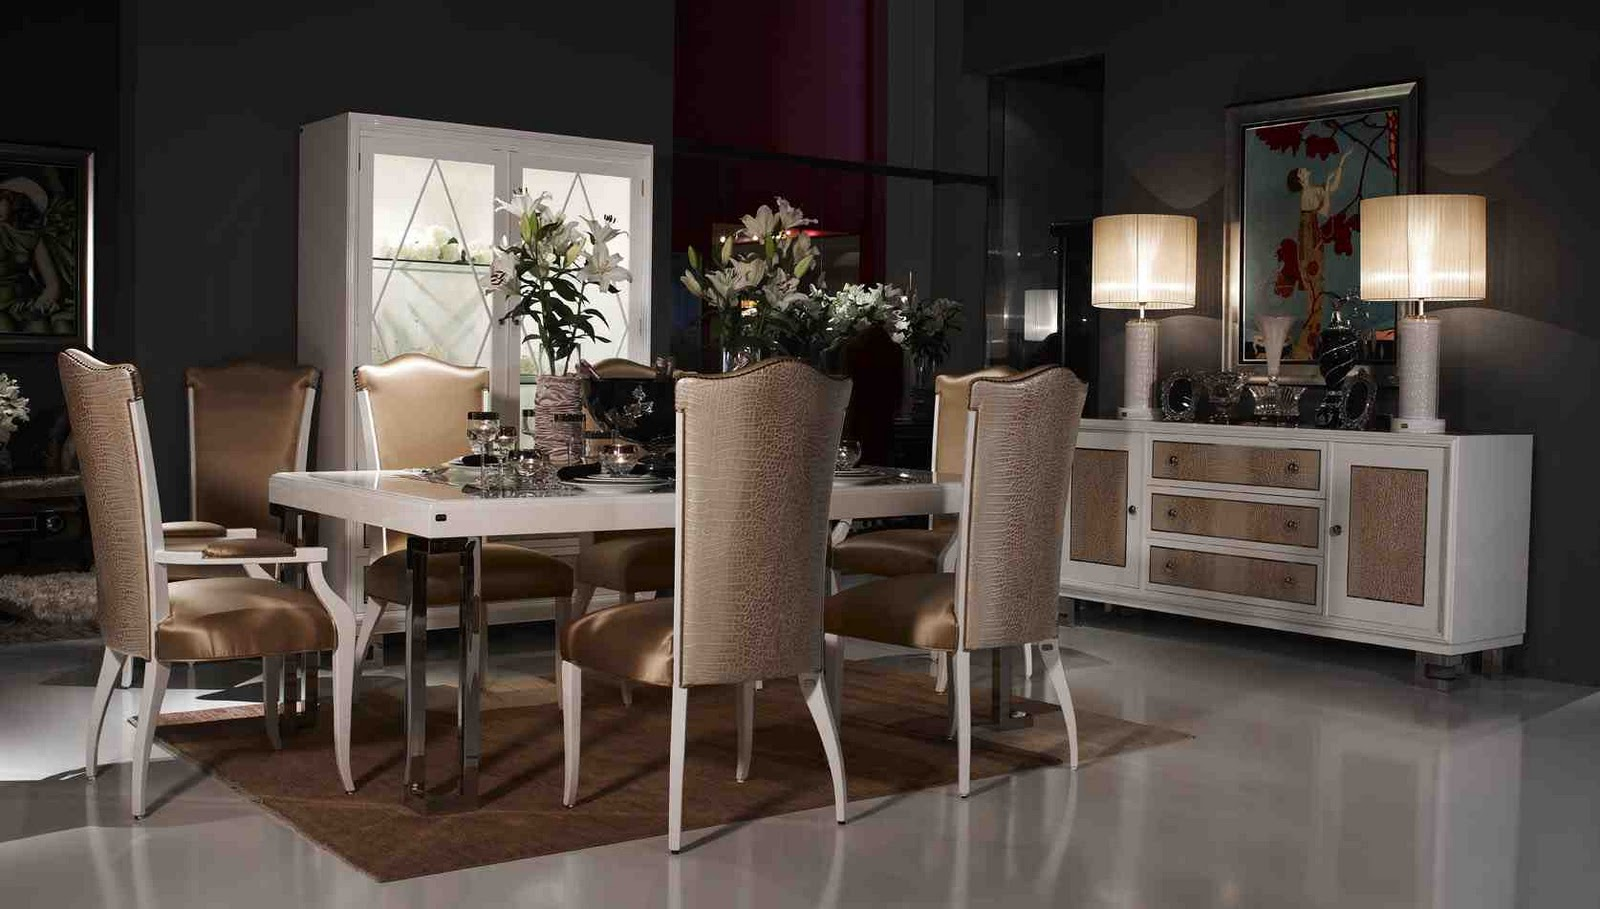 Antique italian classic furniture furniture design for Modern dining room designs 2013